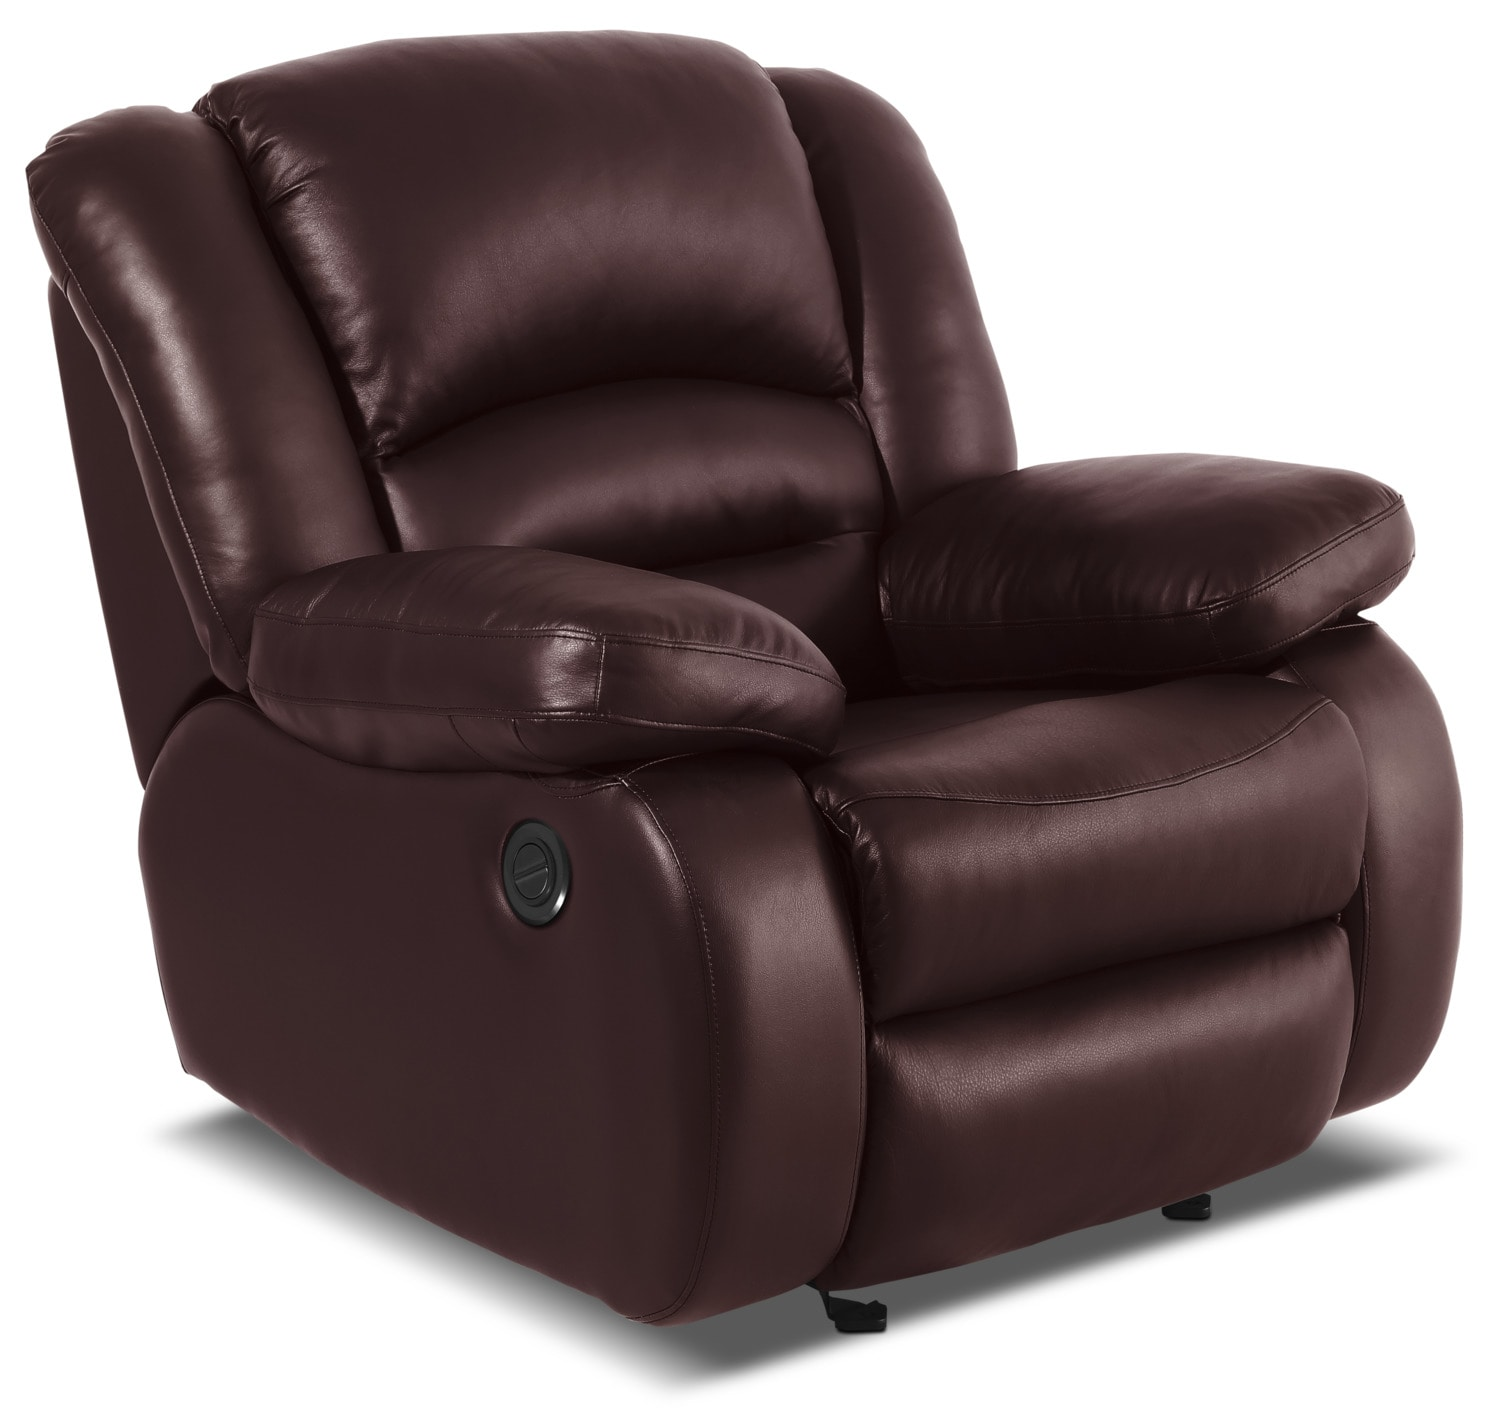 Toreno Genuine Leather Power Reclining Chair – Burgundy